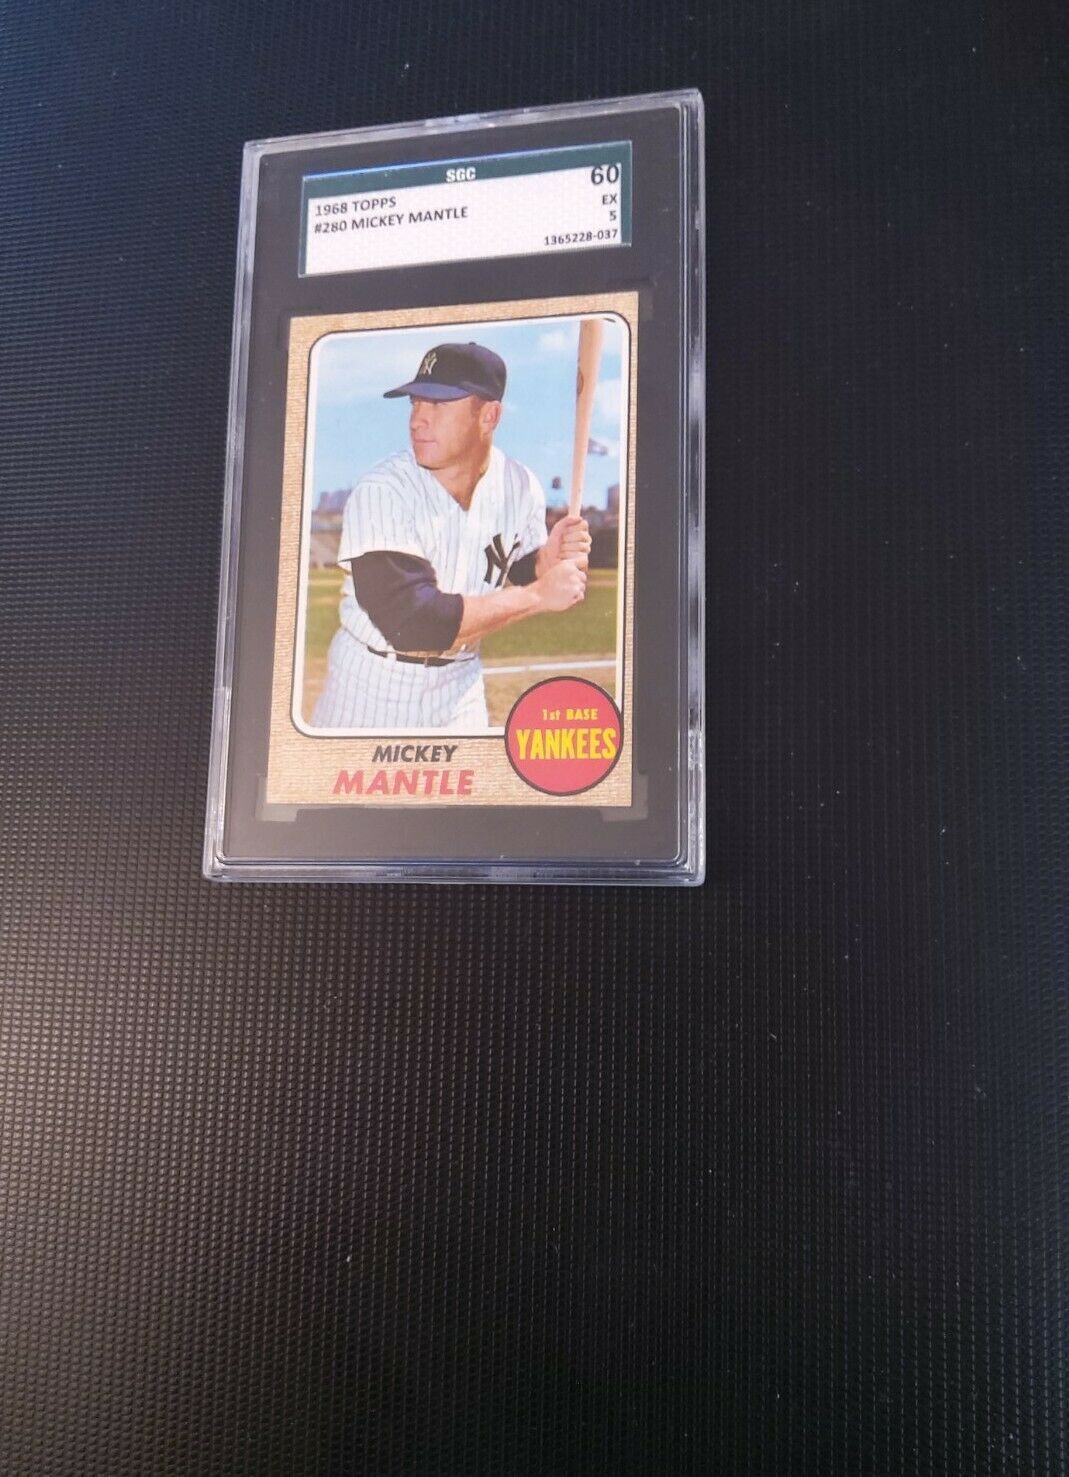 1968 TOPPS BASEBALL #280 MICKEY MANTLE SGC 5 EXCELLENT (60), Nice Corners - Image 2